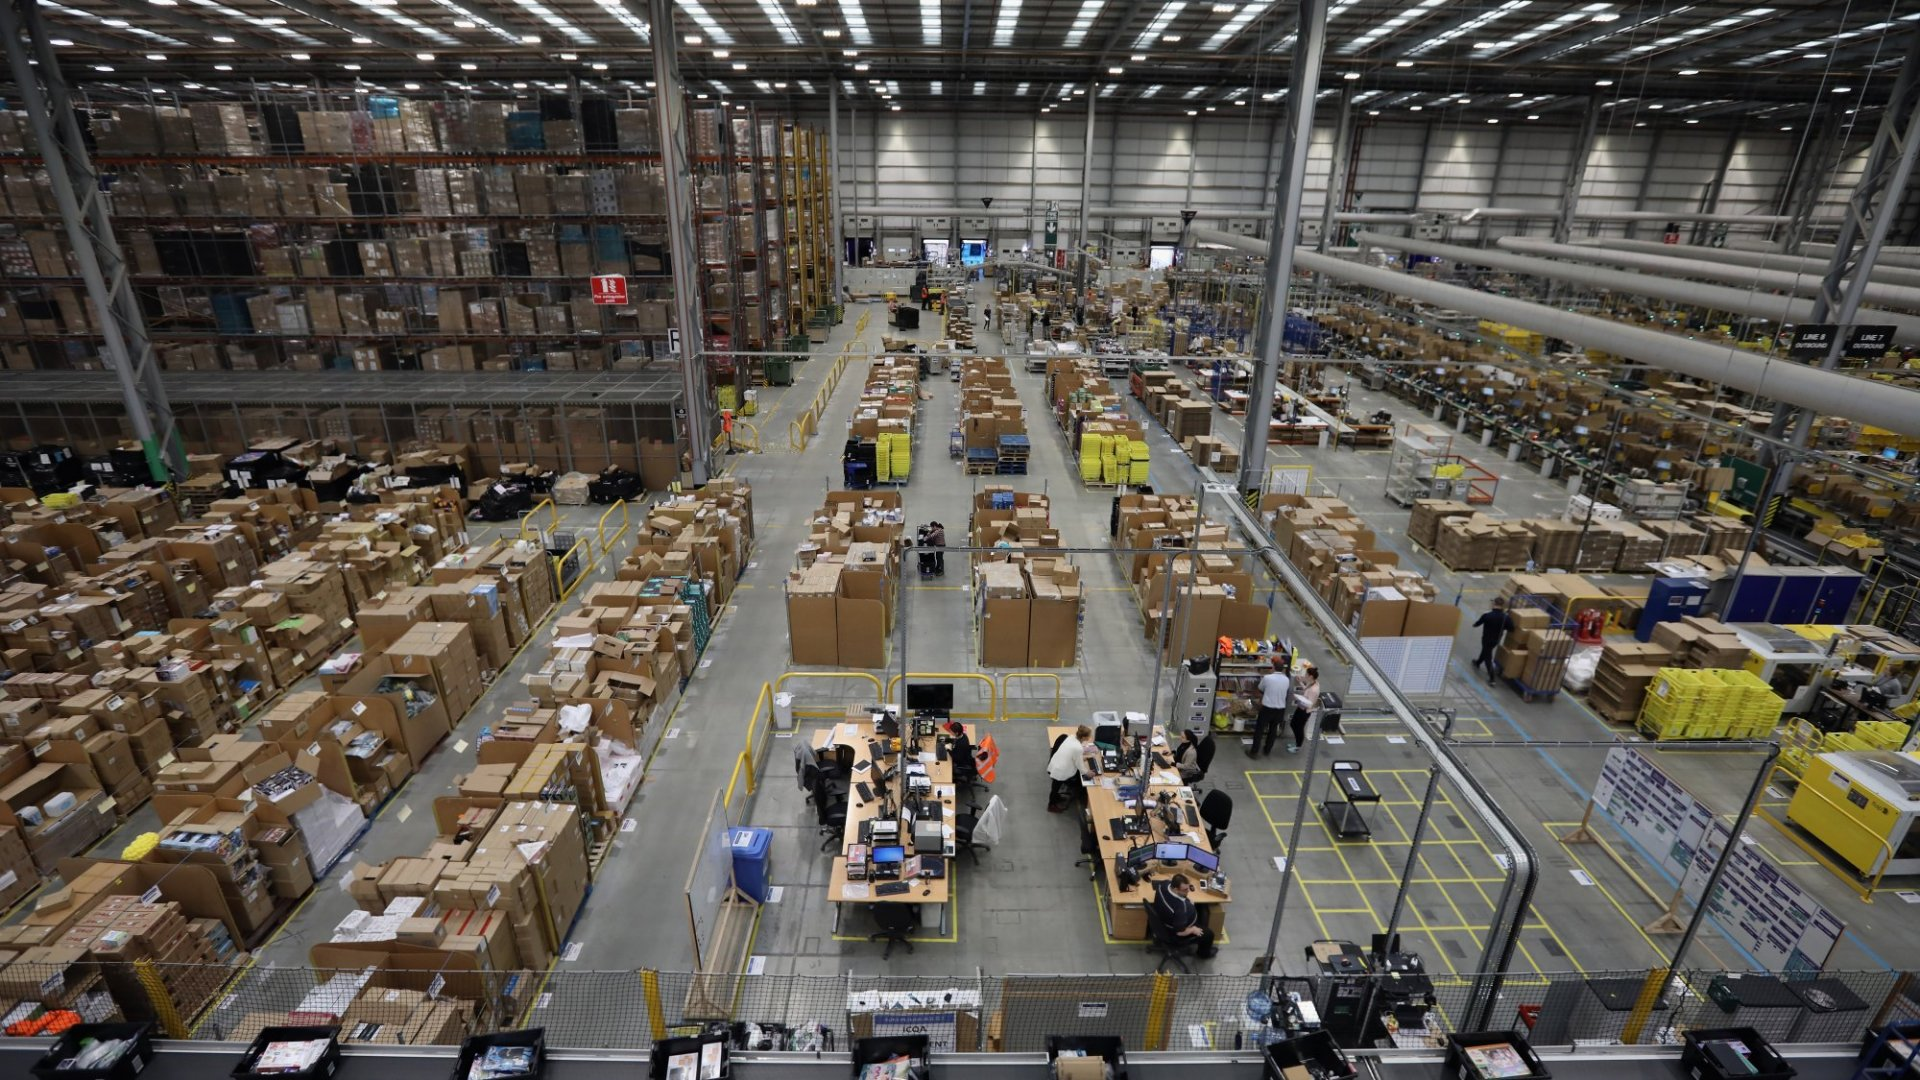 Amazon's Newest Initiative: Spending $700 Million to Retrain 100,000 Workers by 2025